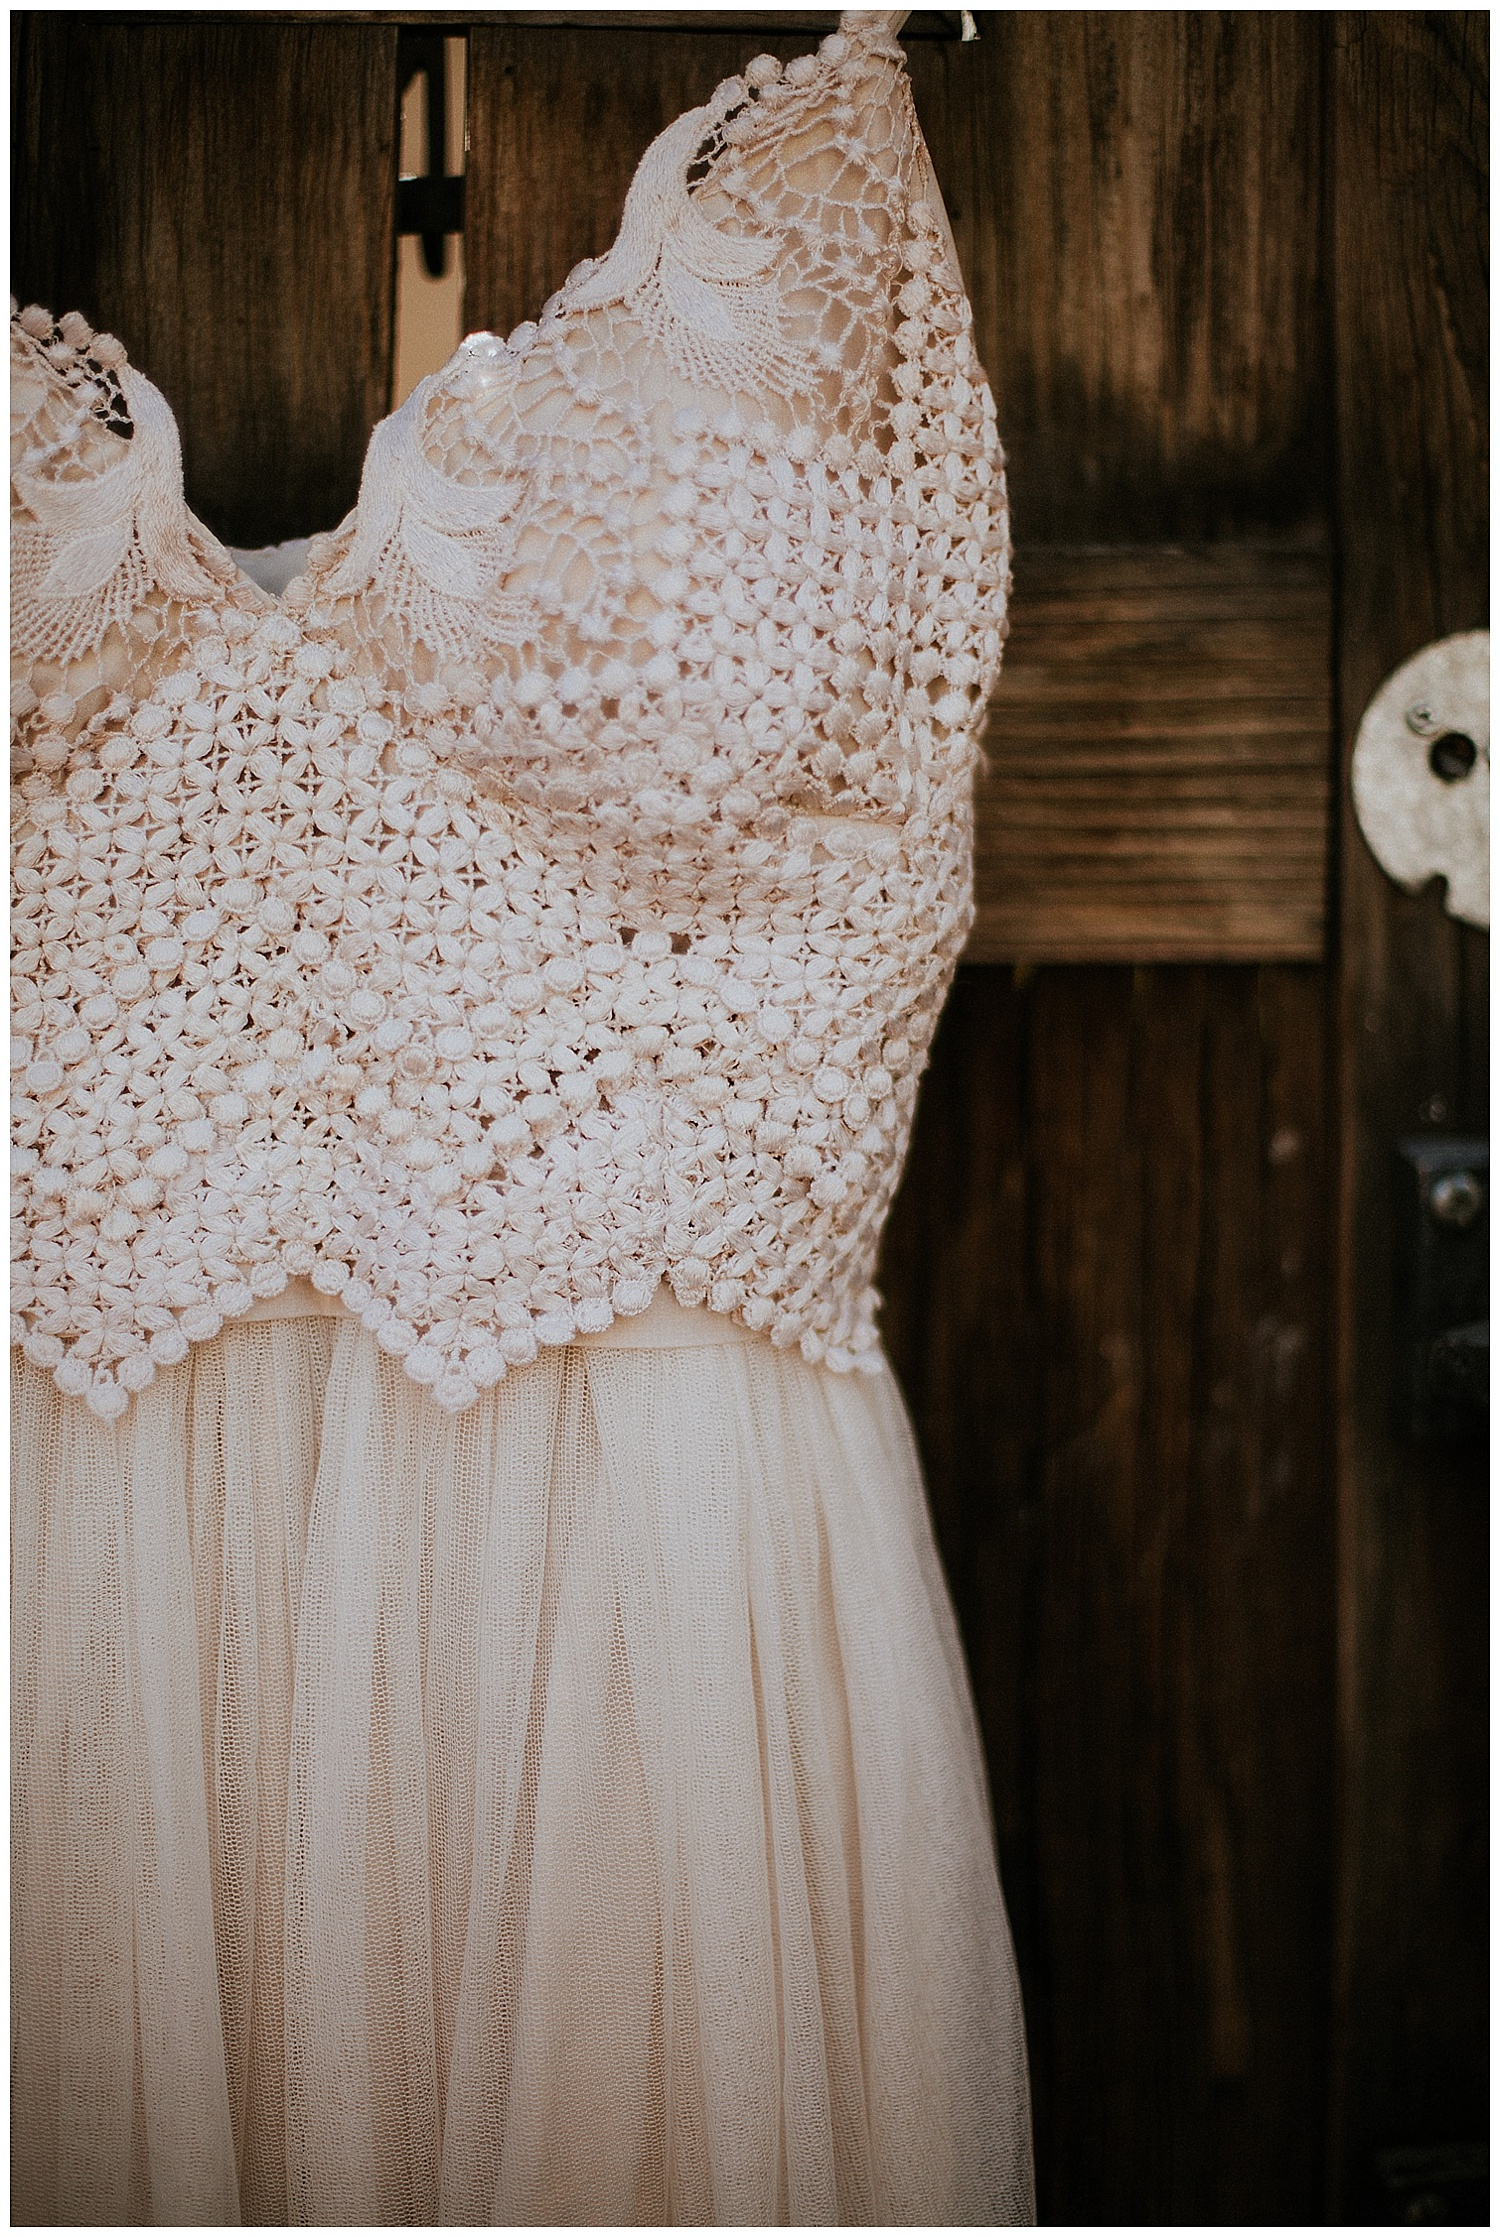 Malisa's wedding dress was made from her mother's wedding dress. The dress was purchased in the 80's for her mother by her great grandmother. Dawn Bacon (Santa Fe seamstress) reconstructed the material to create the bodice of the dress and the skirt was made new of silk chiffon.